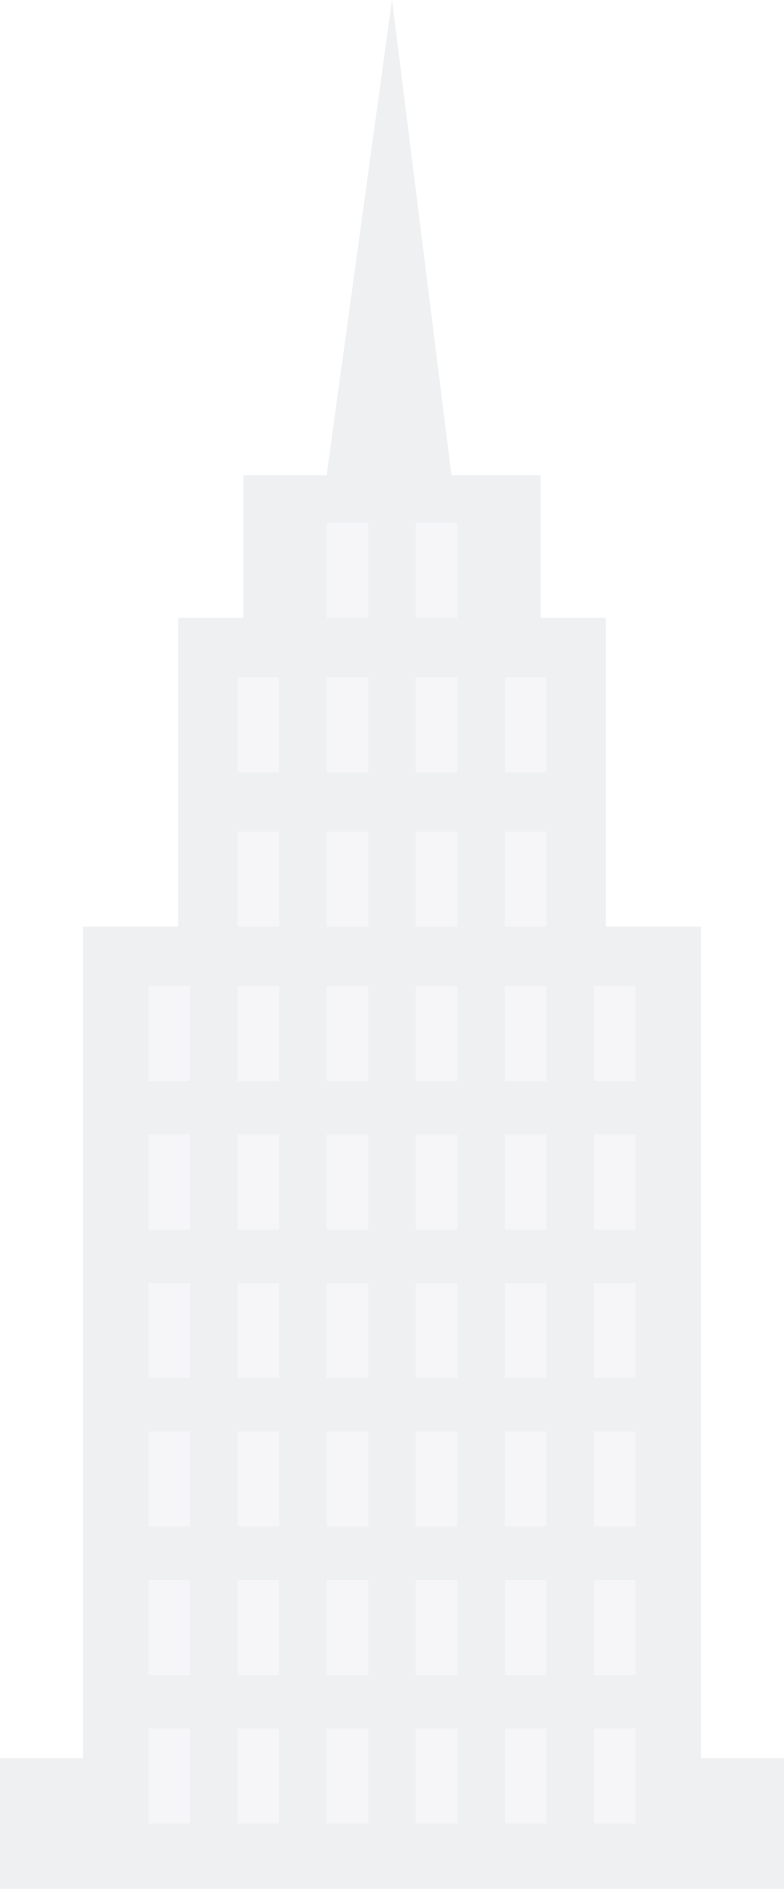 style city building Vector images in PNG and SVG | Icons8 Illustrations